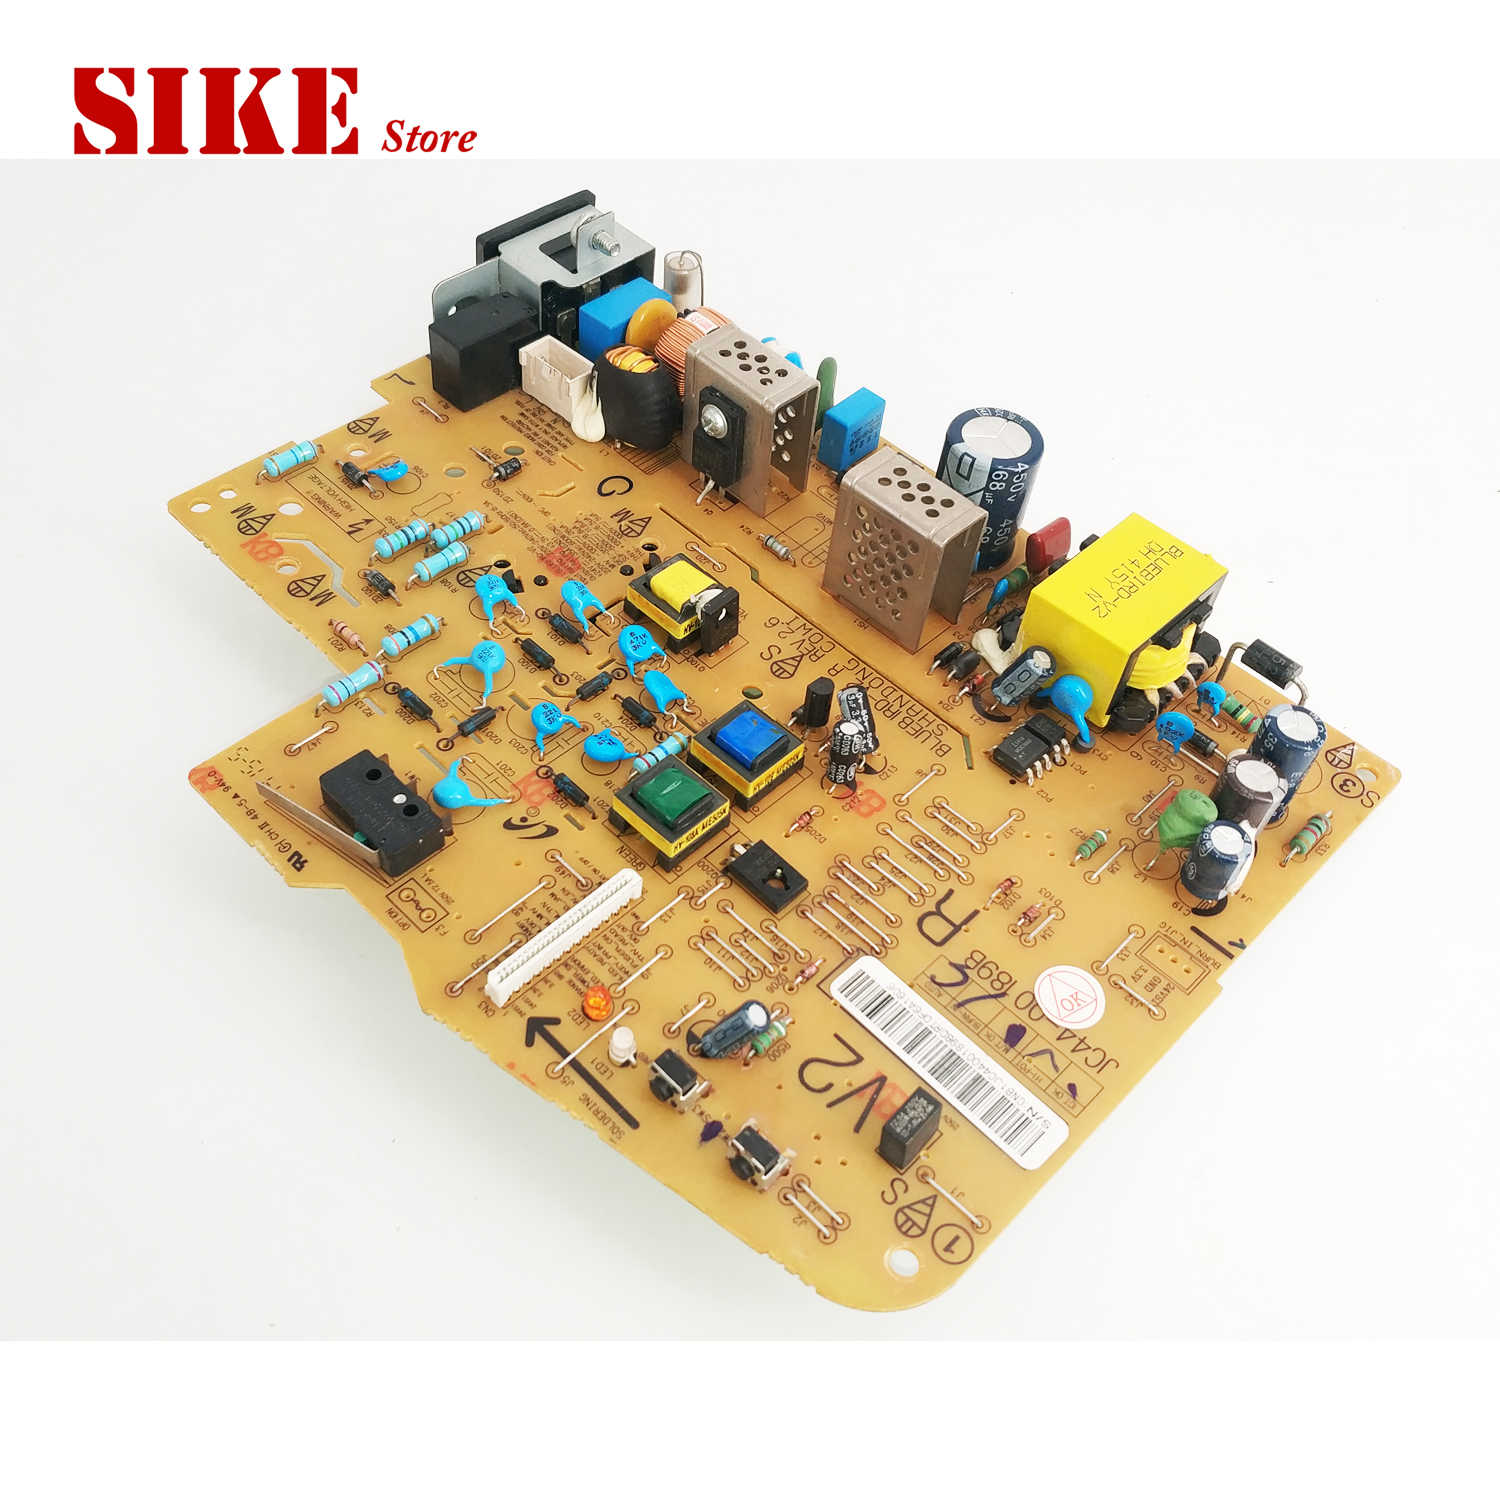 JC44-00189A SMPS For Samsung ML-1660 ML-1661 ML-1665 ML-1666 ML 1660 1661  1665 1666 Voltage Power Supply Board JC44-00188A